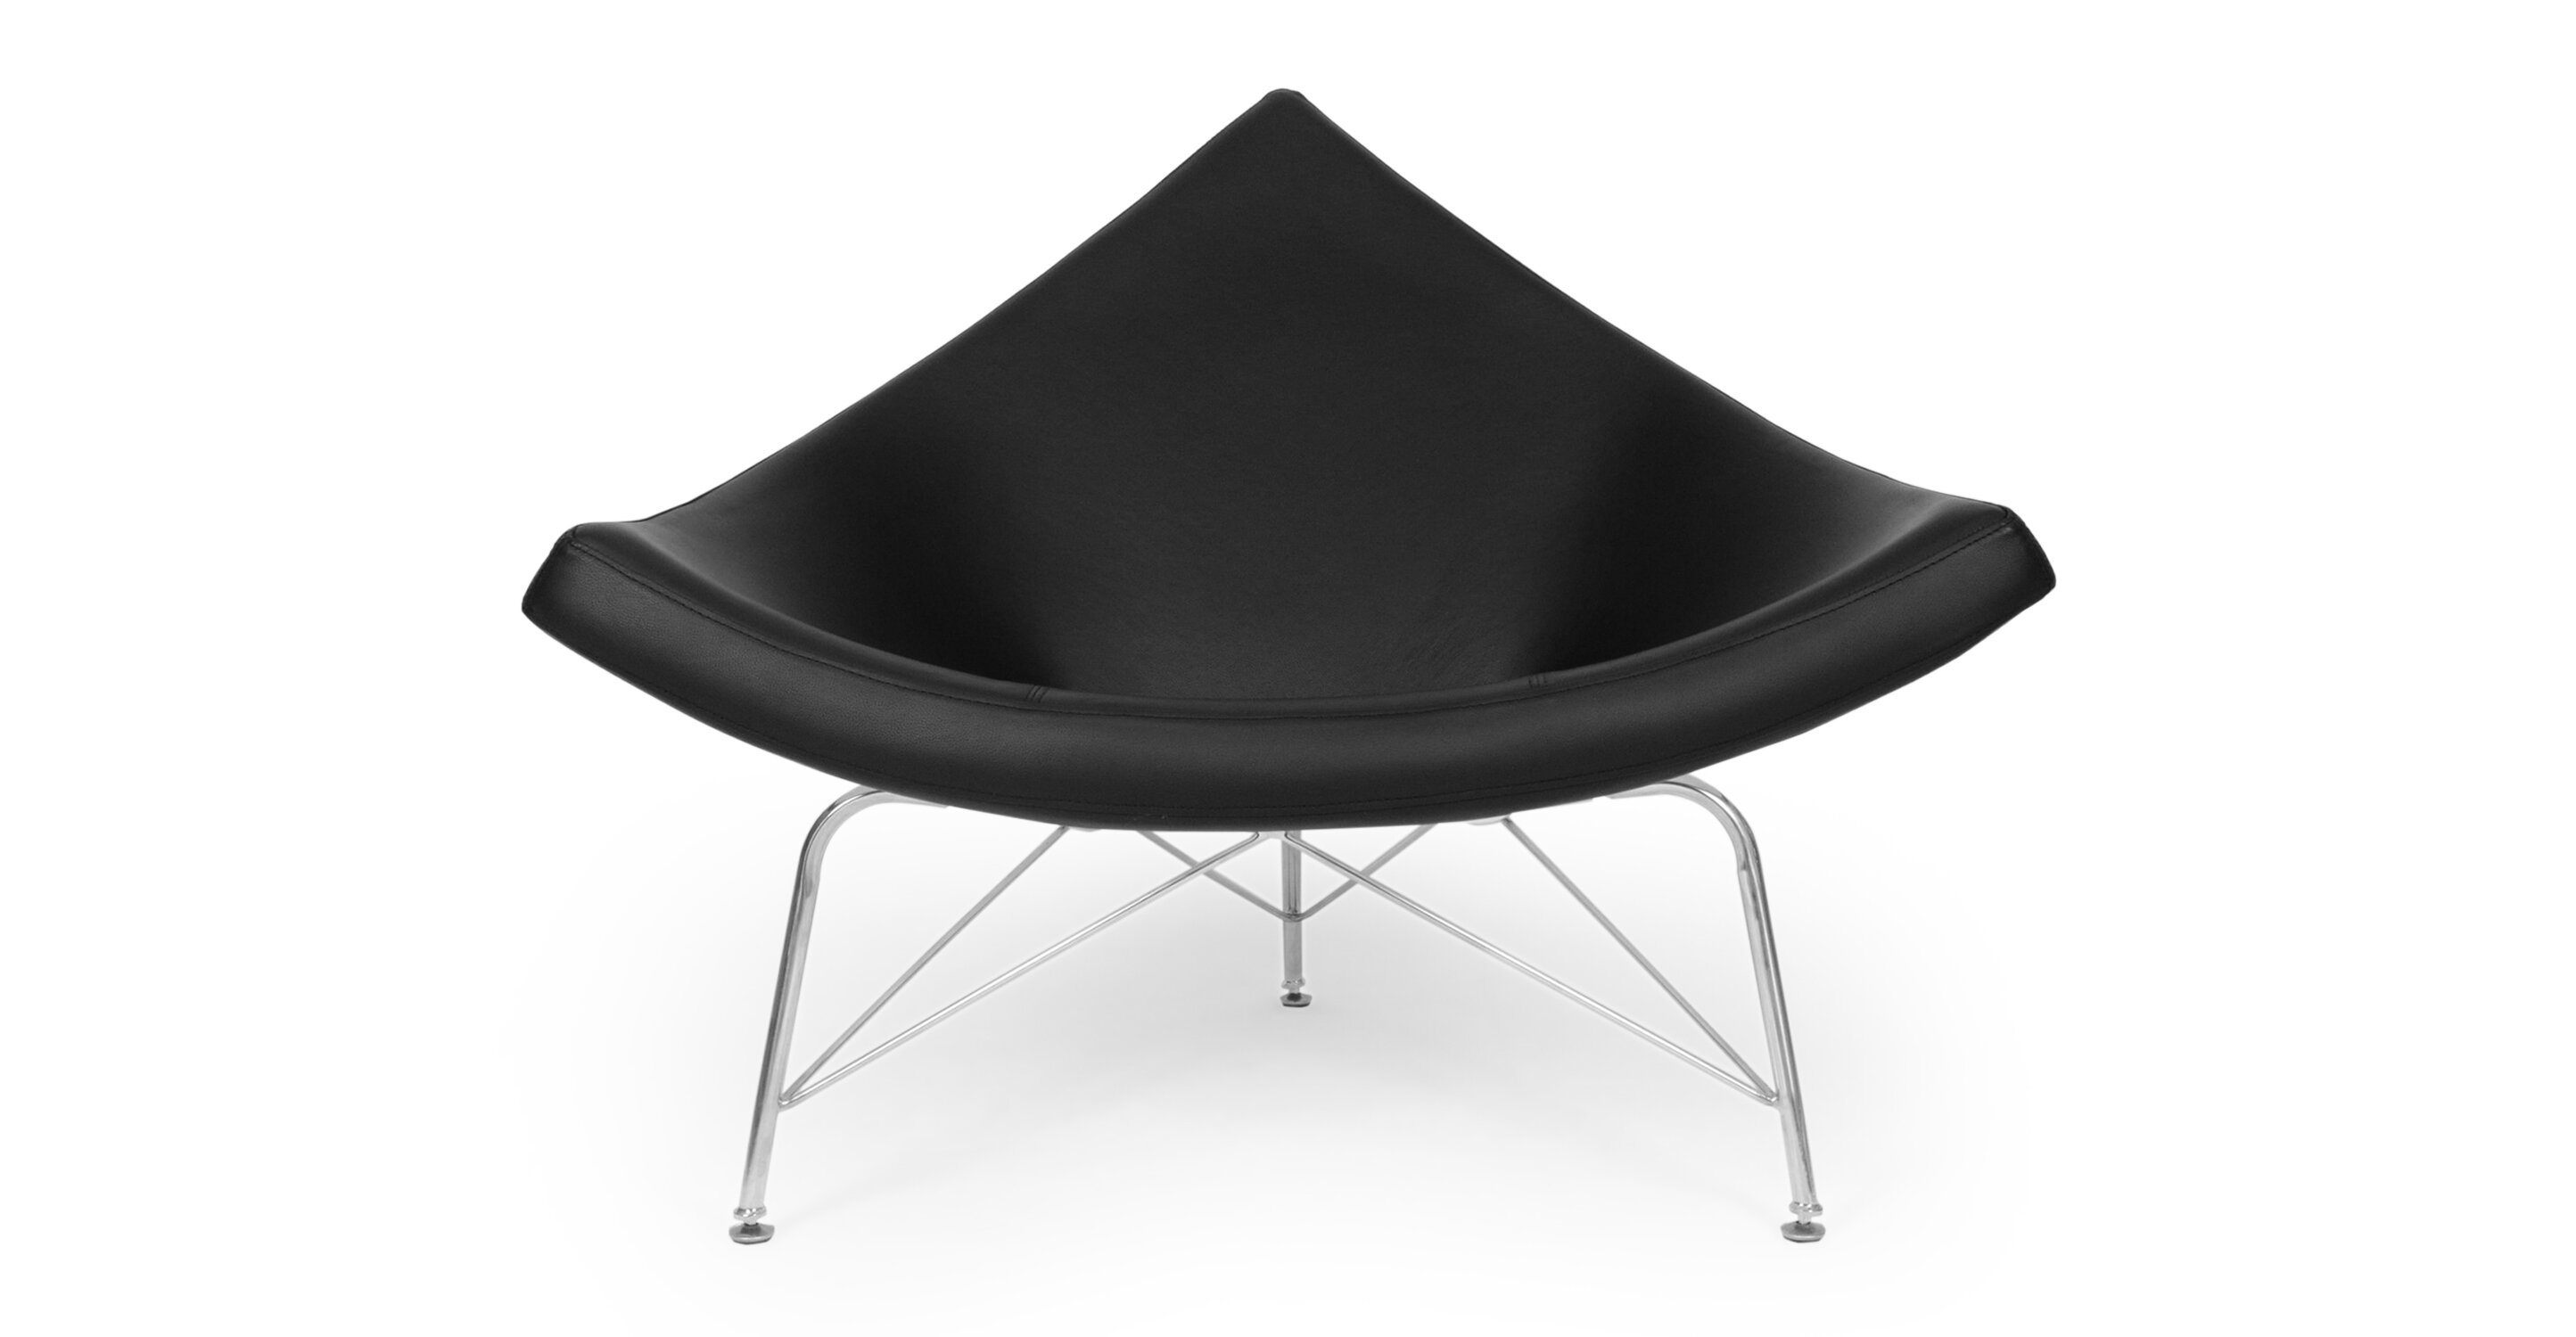 Incredible Gretel Triangle Lounge Chair Inzonedesignstudio Interior Chair Design Inzonedesignstudiocom